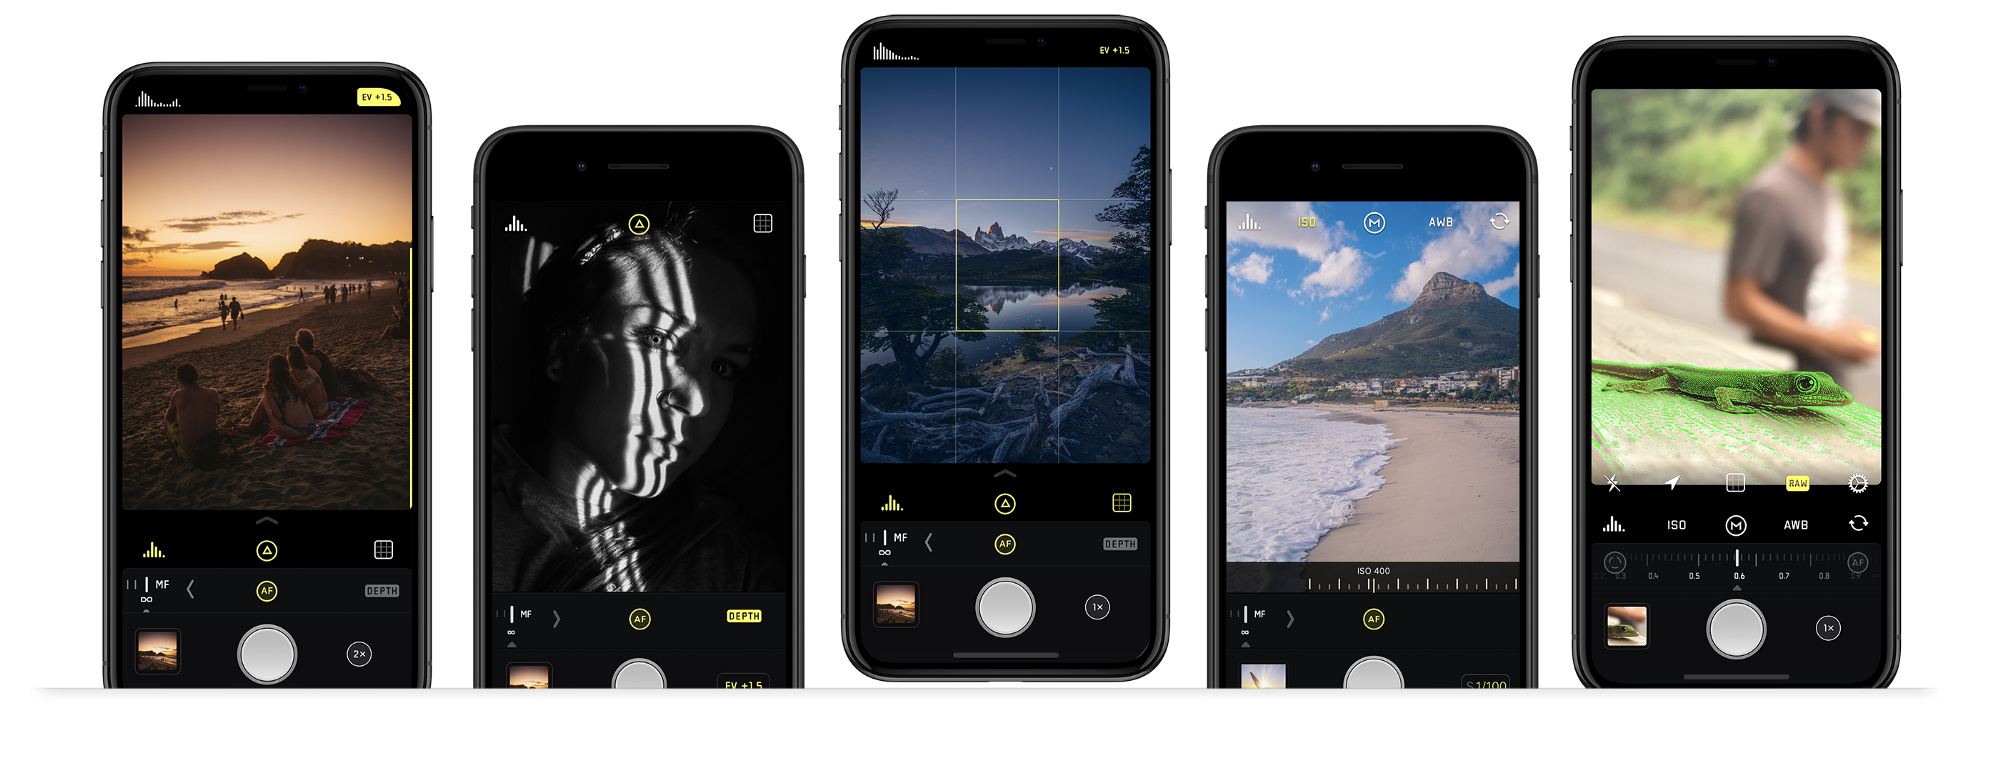 camera apps for iphone halide 1 5 a app made for iphone x halide 13722